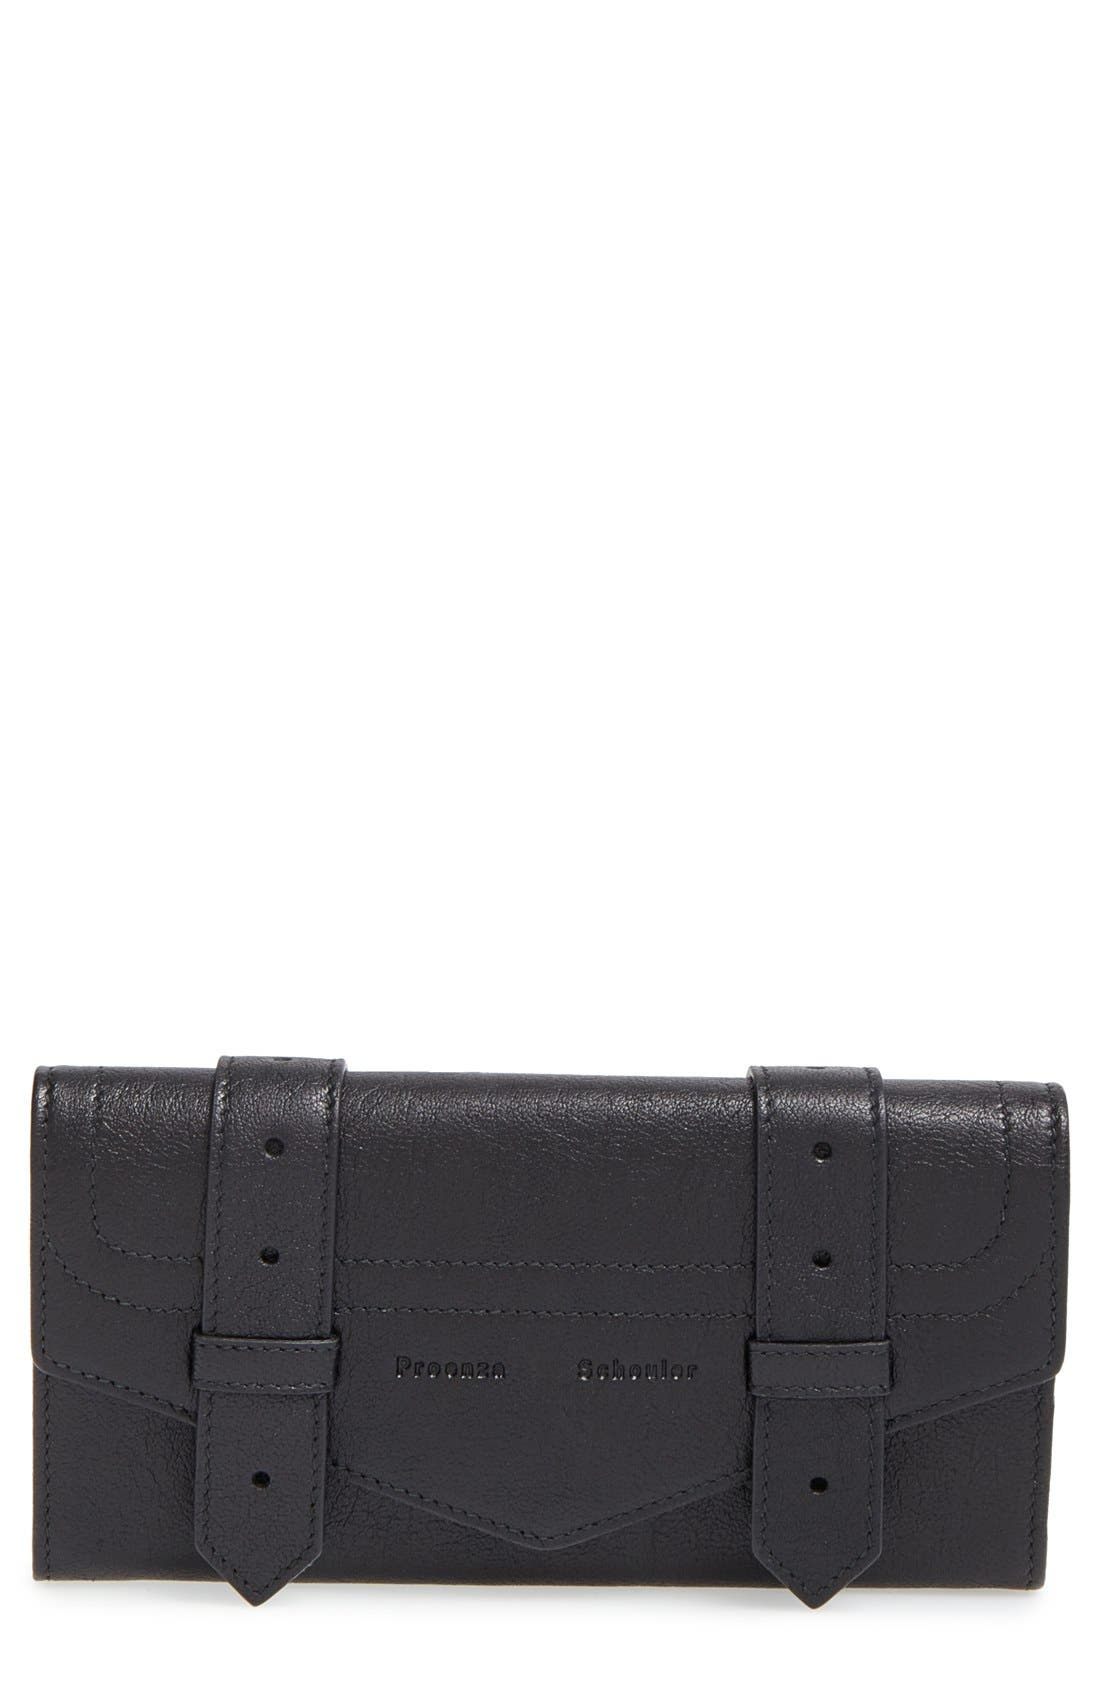 Alternate Image 1 Selected - Proenza Schouler 'PS1' Continental Wallet